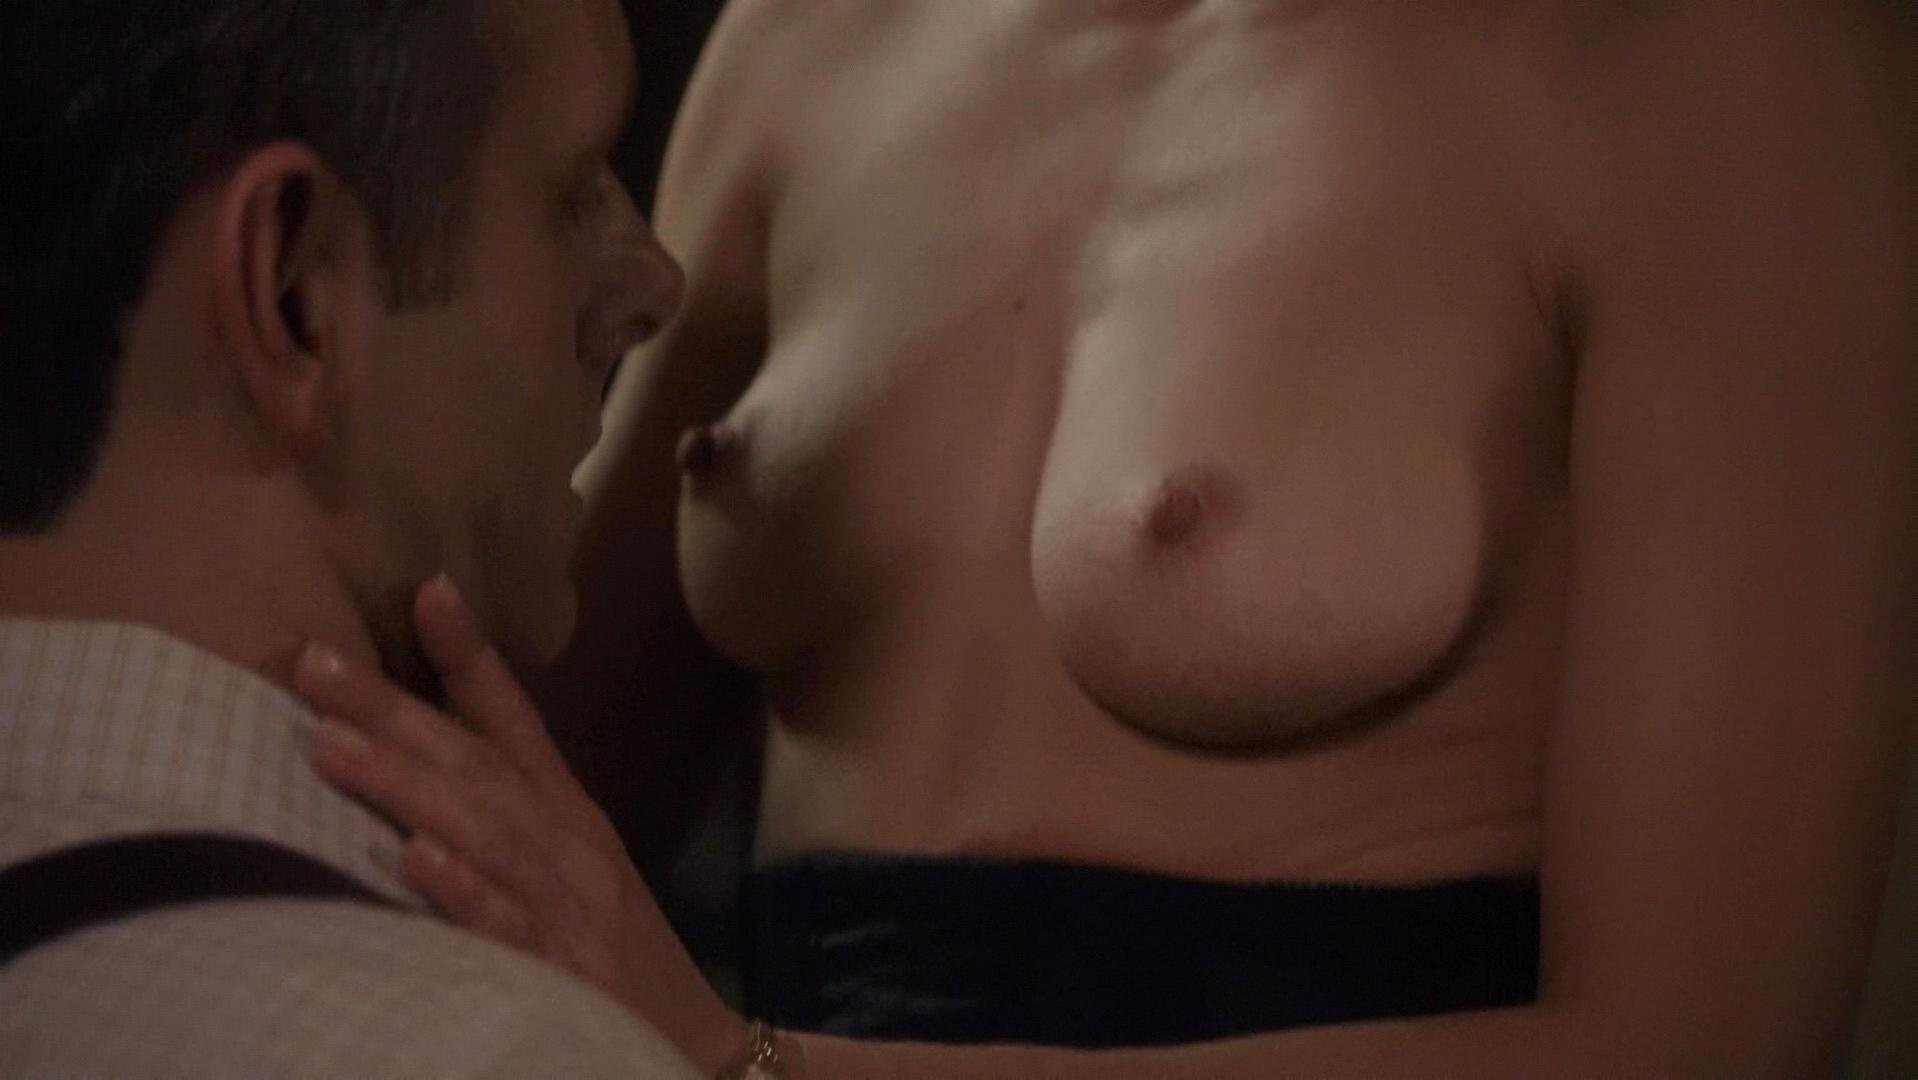 Lizzy caplan masters of sex 07 - 1 part 6